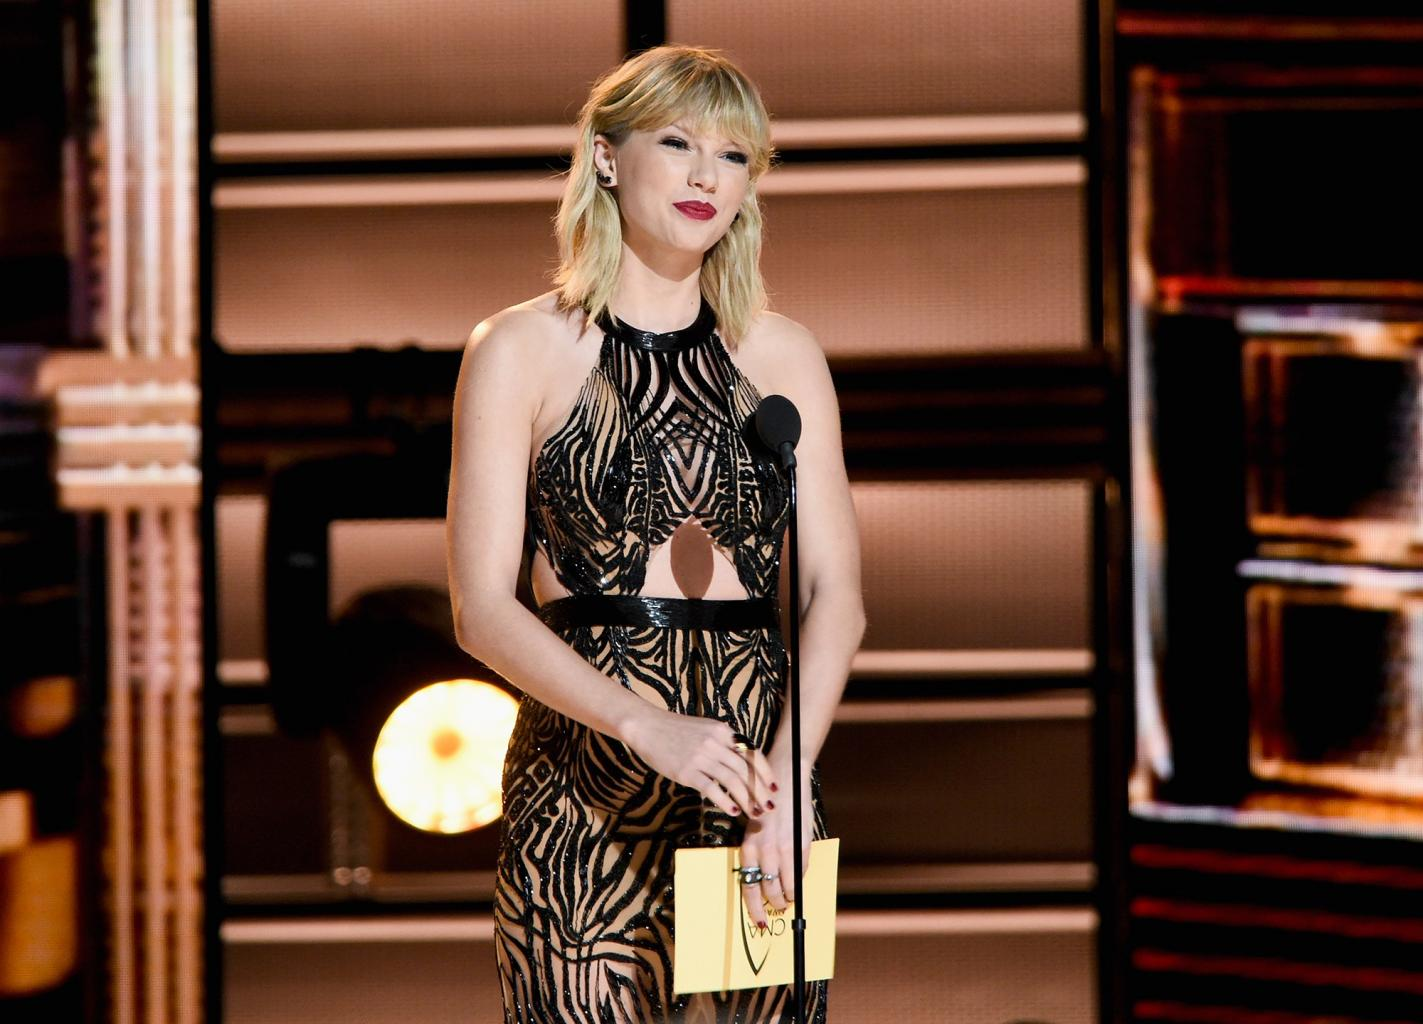 Taylor Swift Makes Big Return to the Cma Awards to Present Entertainer of the Year to Garth Brooks